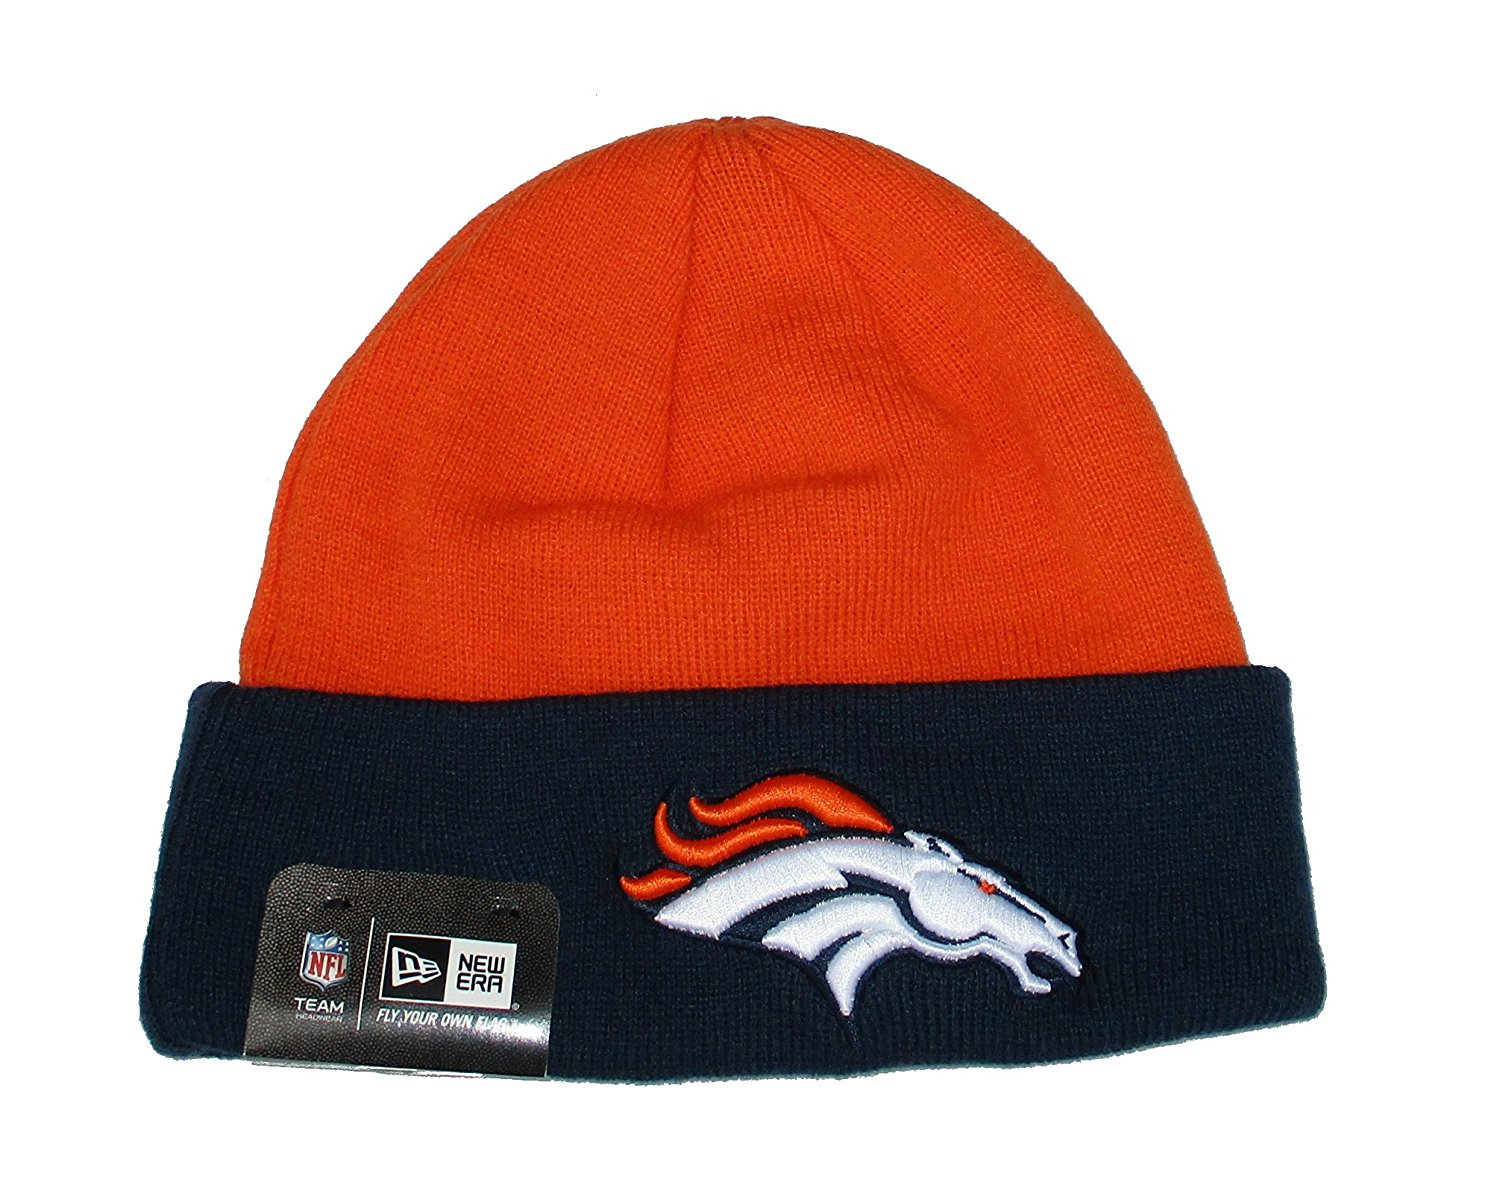 546caea92a7 Get Quotations · Denver Broncos New Era Knit Cuff Beanie Hat Cap -Team  Colors